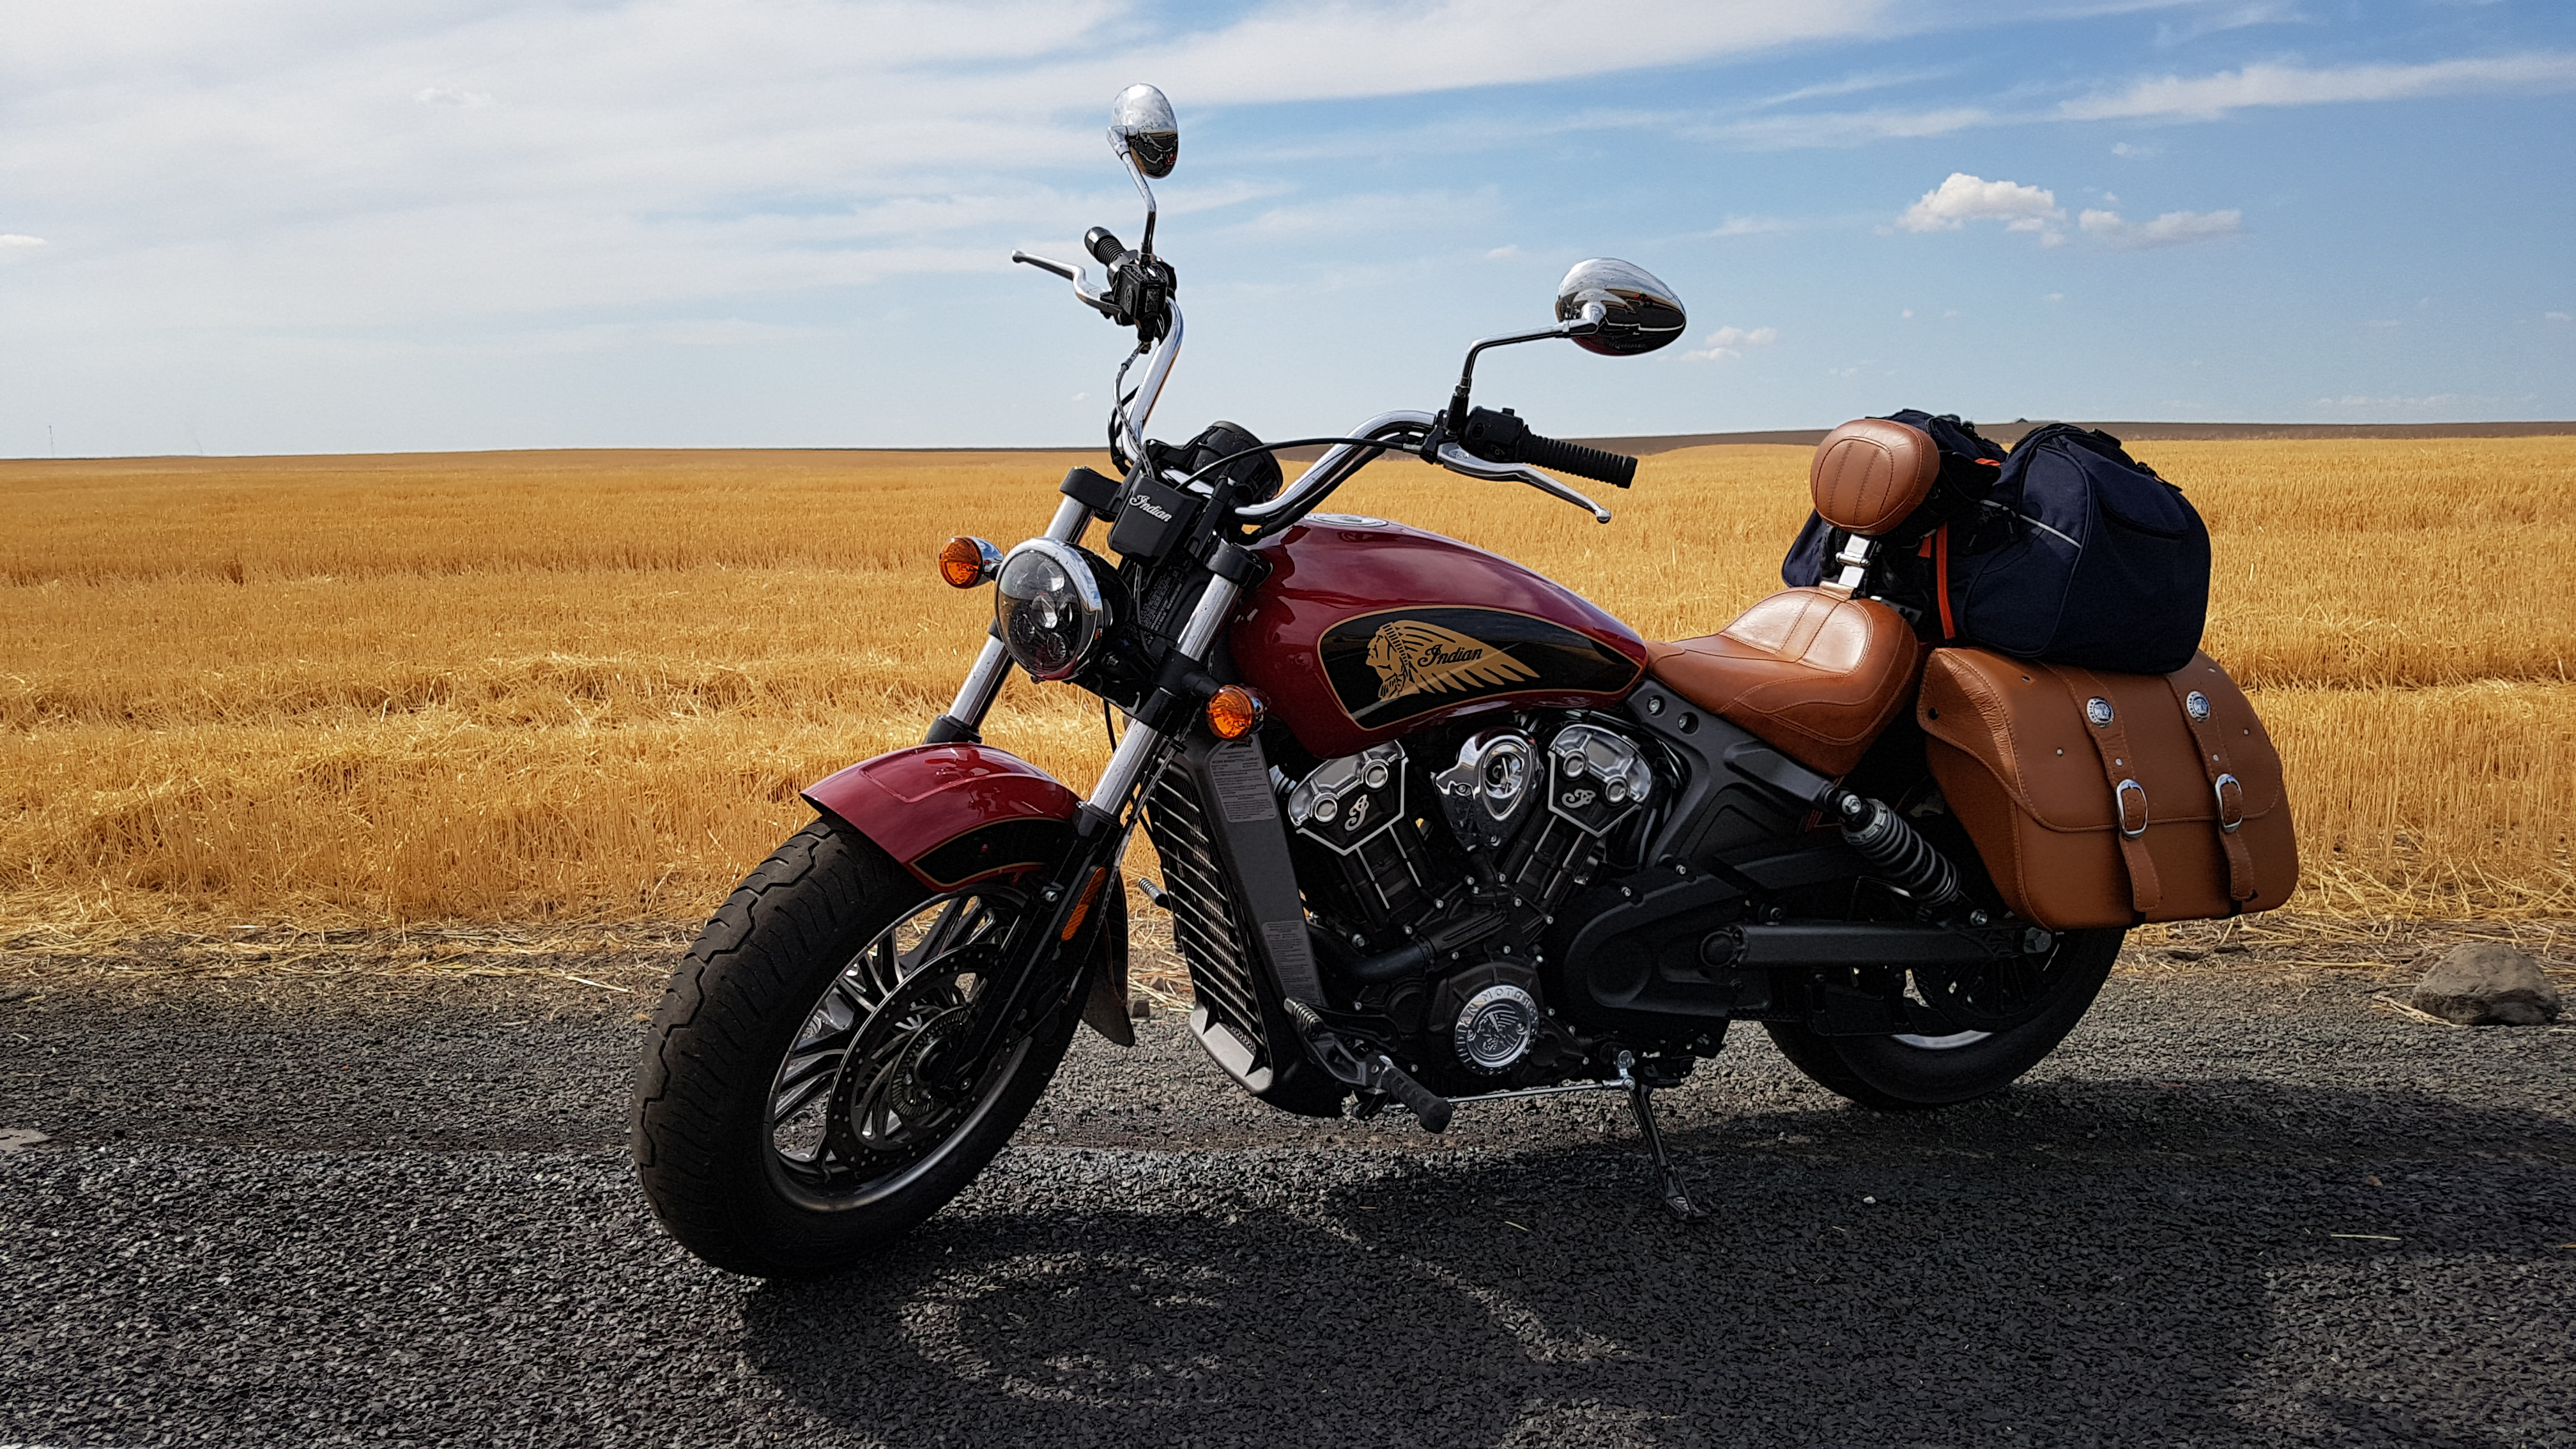 2014 Year Motorcycles With Pictures (Page 7)